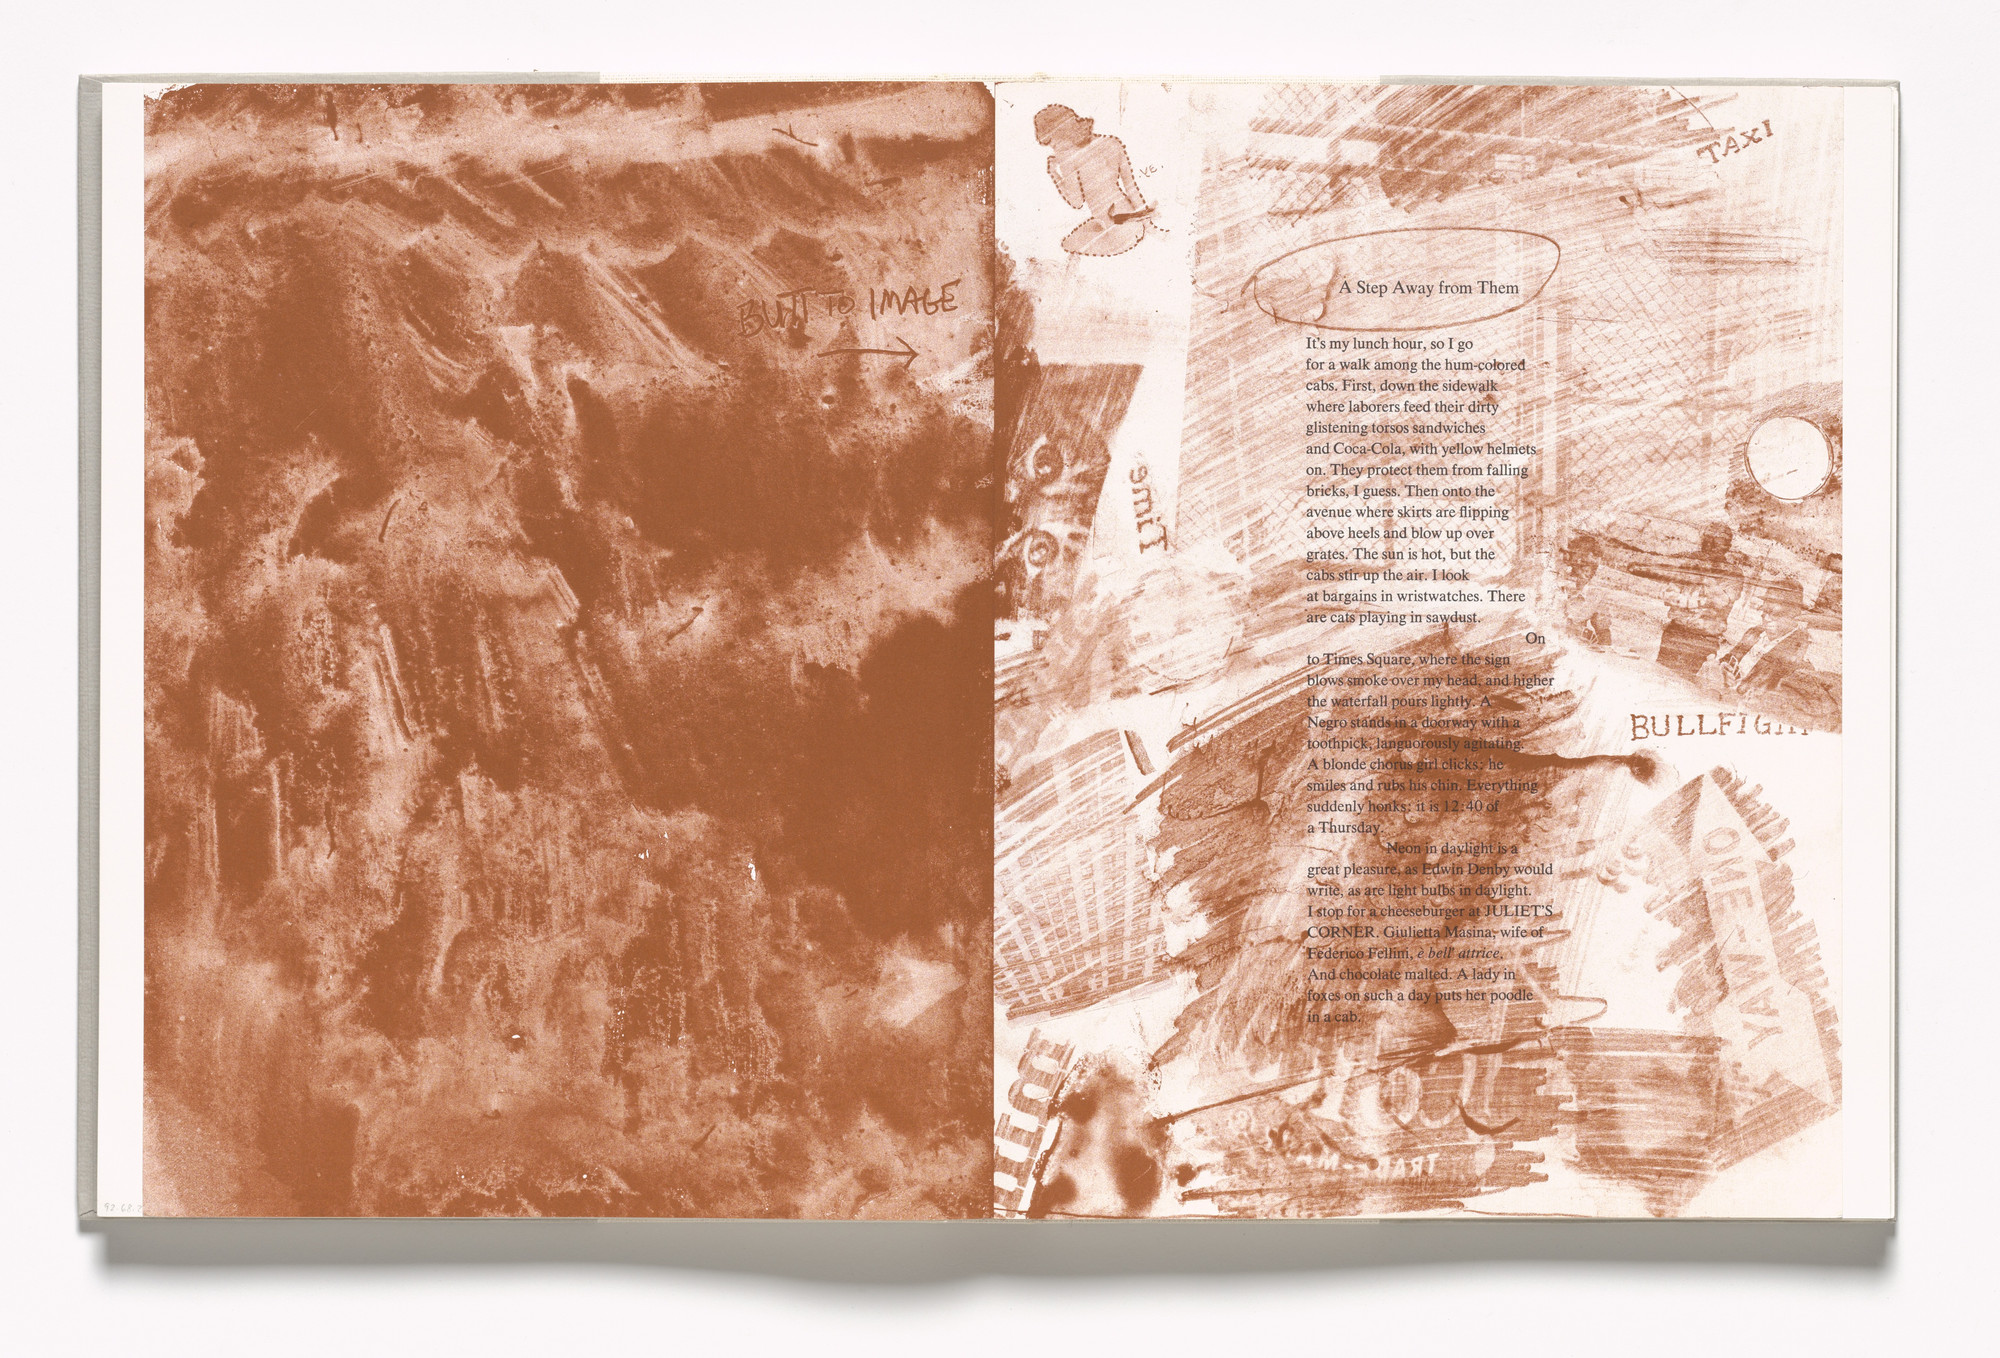 Robert Rauschenberg. In-text plate (folios 55 verso and 56 recto) from In Memory of My Feelings. 1967